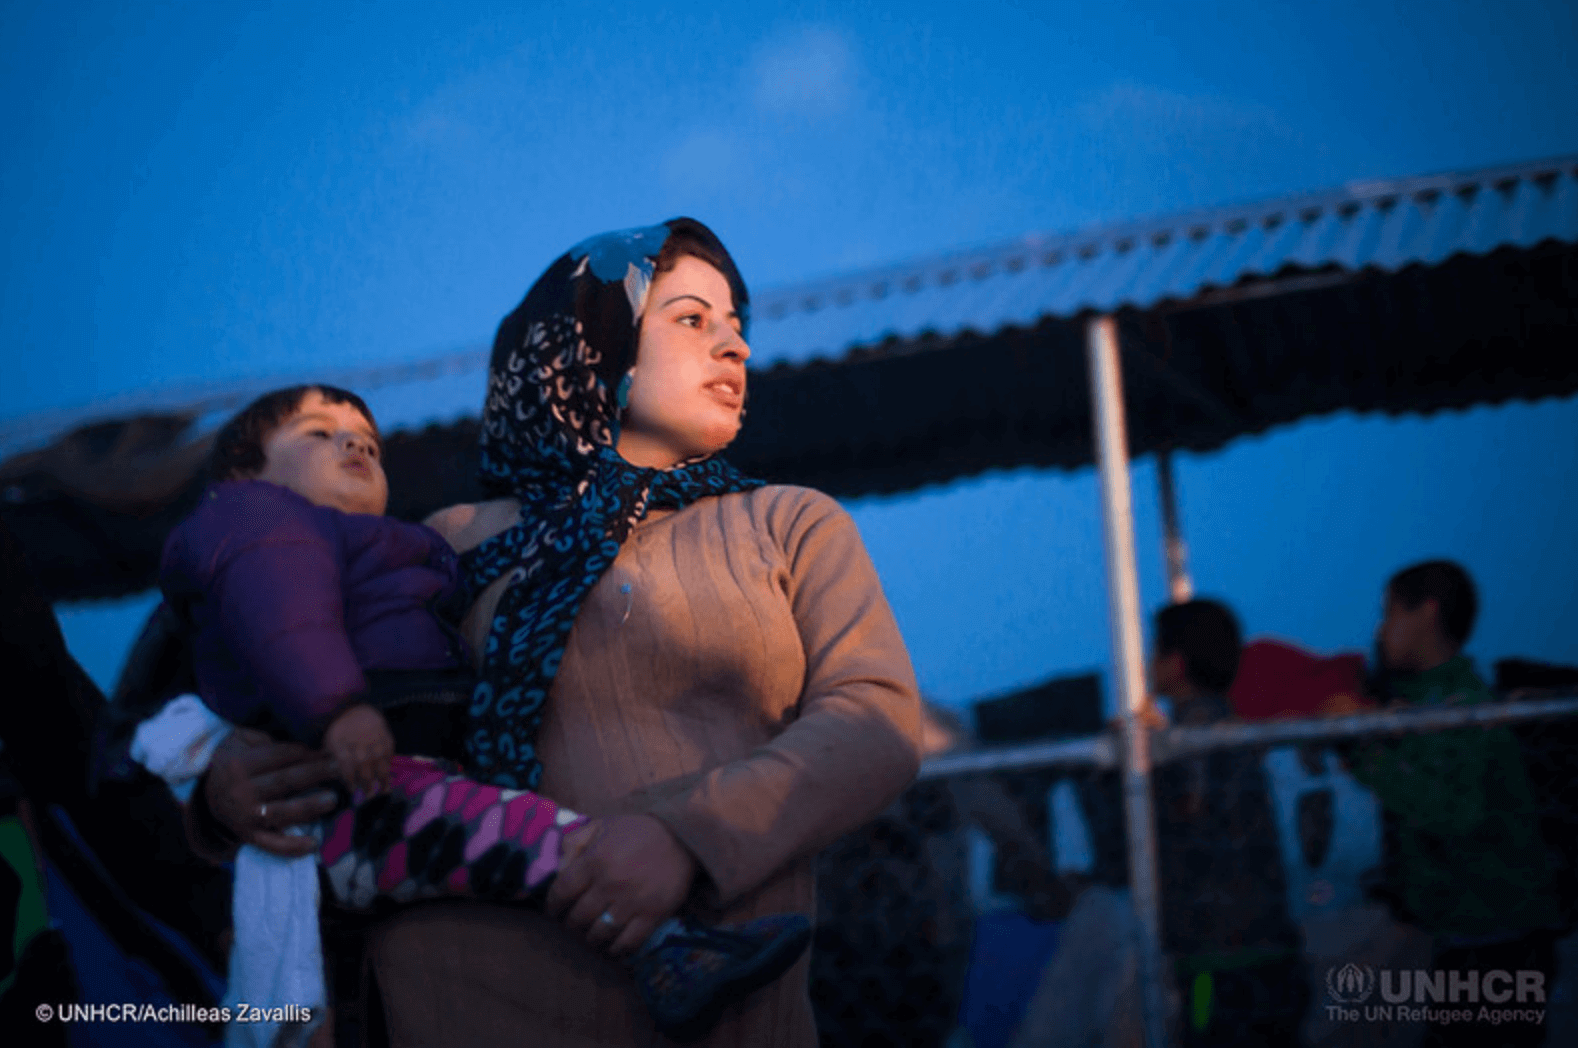 Unhcr february vacancies c2edc6aa b9df 40d3 88ba 0e4647962445